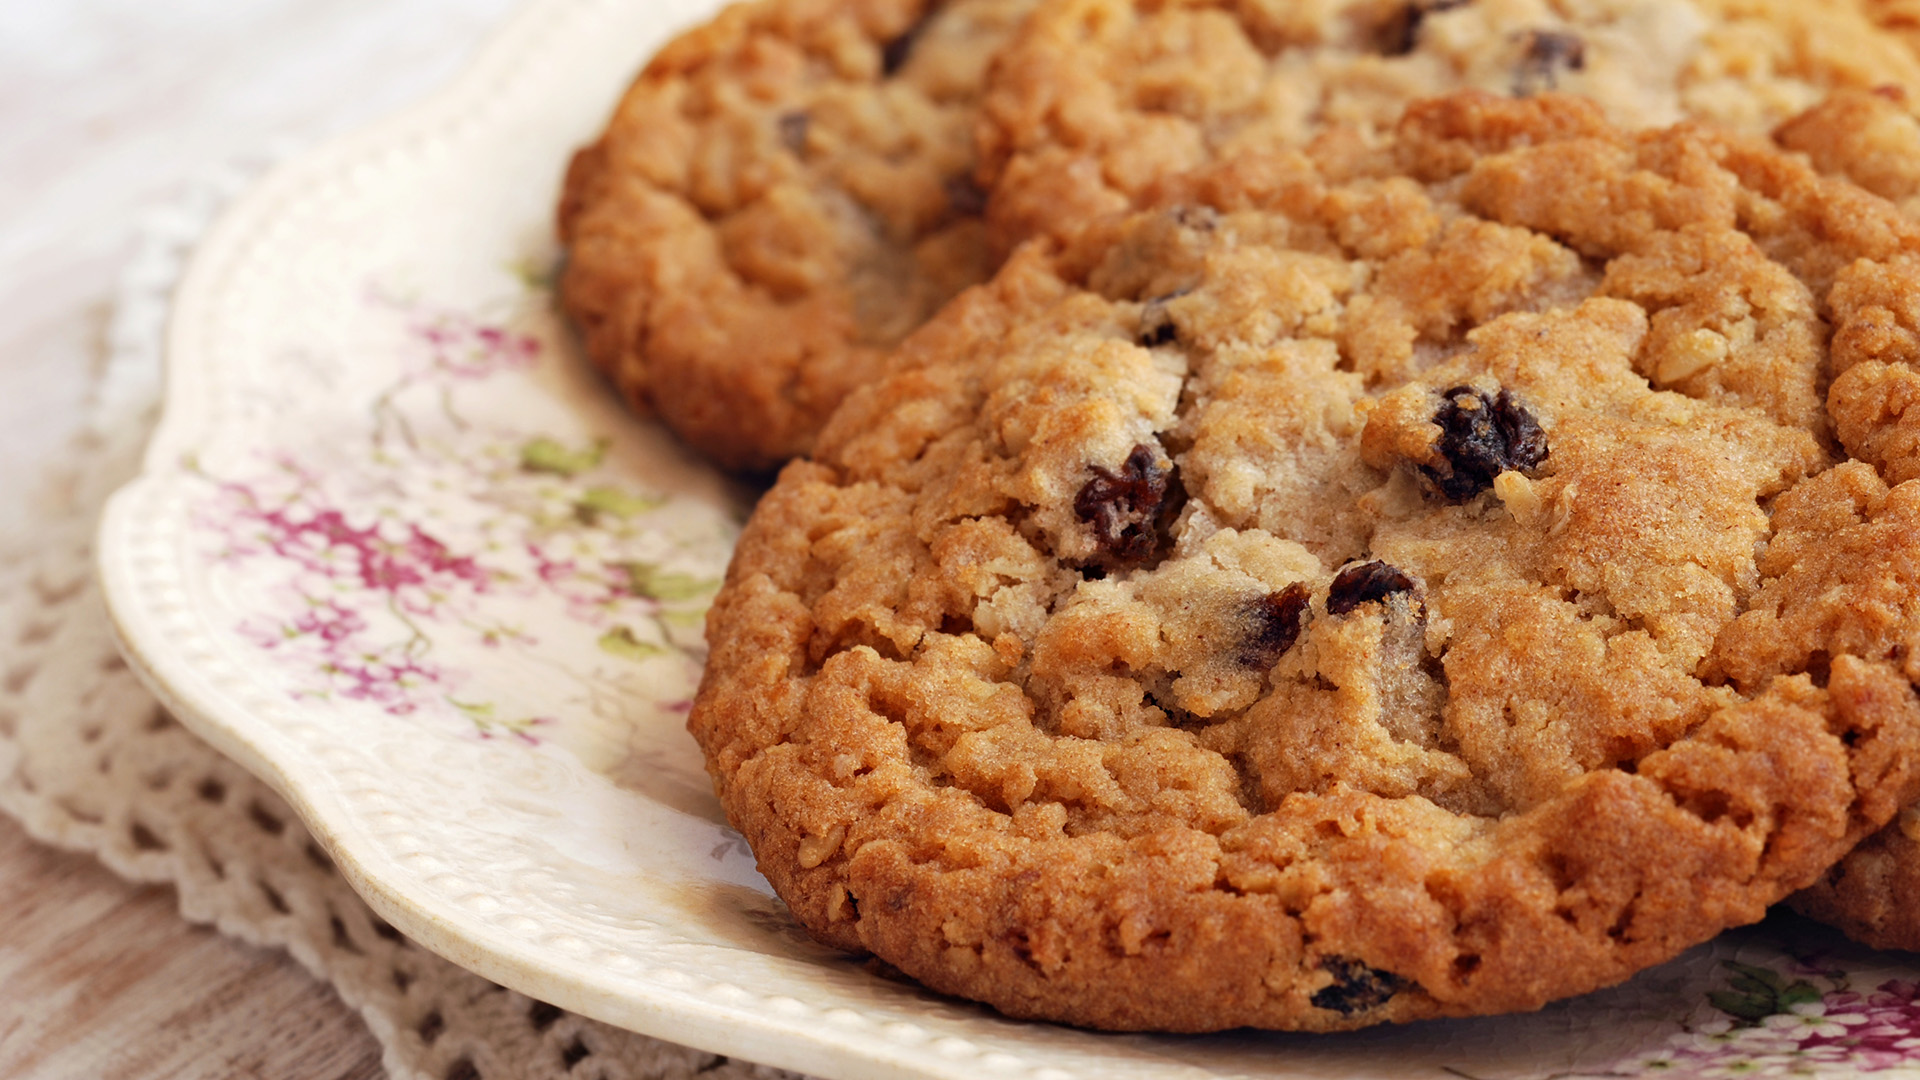 How To Make Healthy Oatmeal Chocolate Chip Cookies